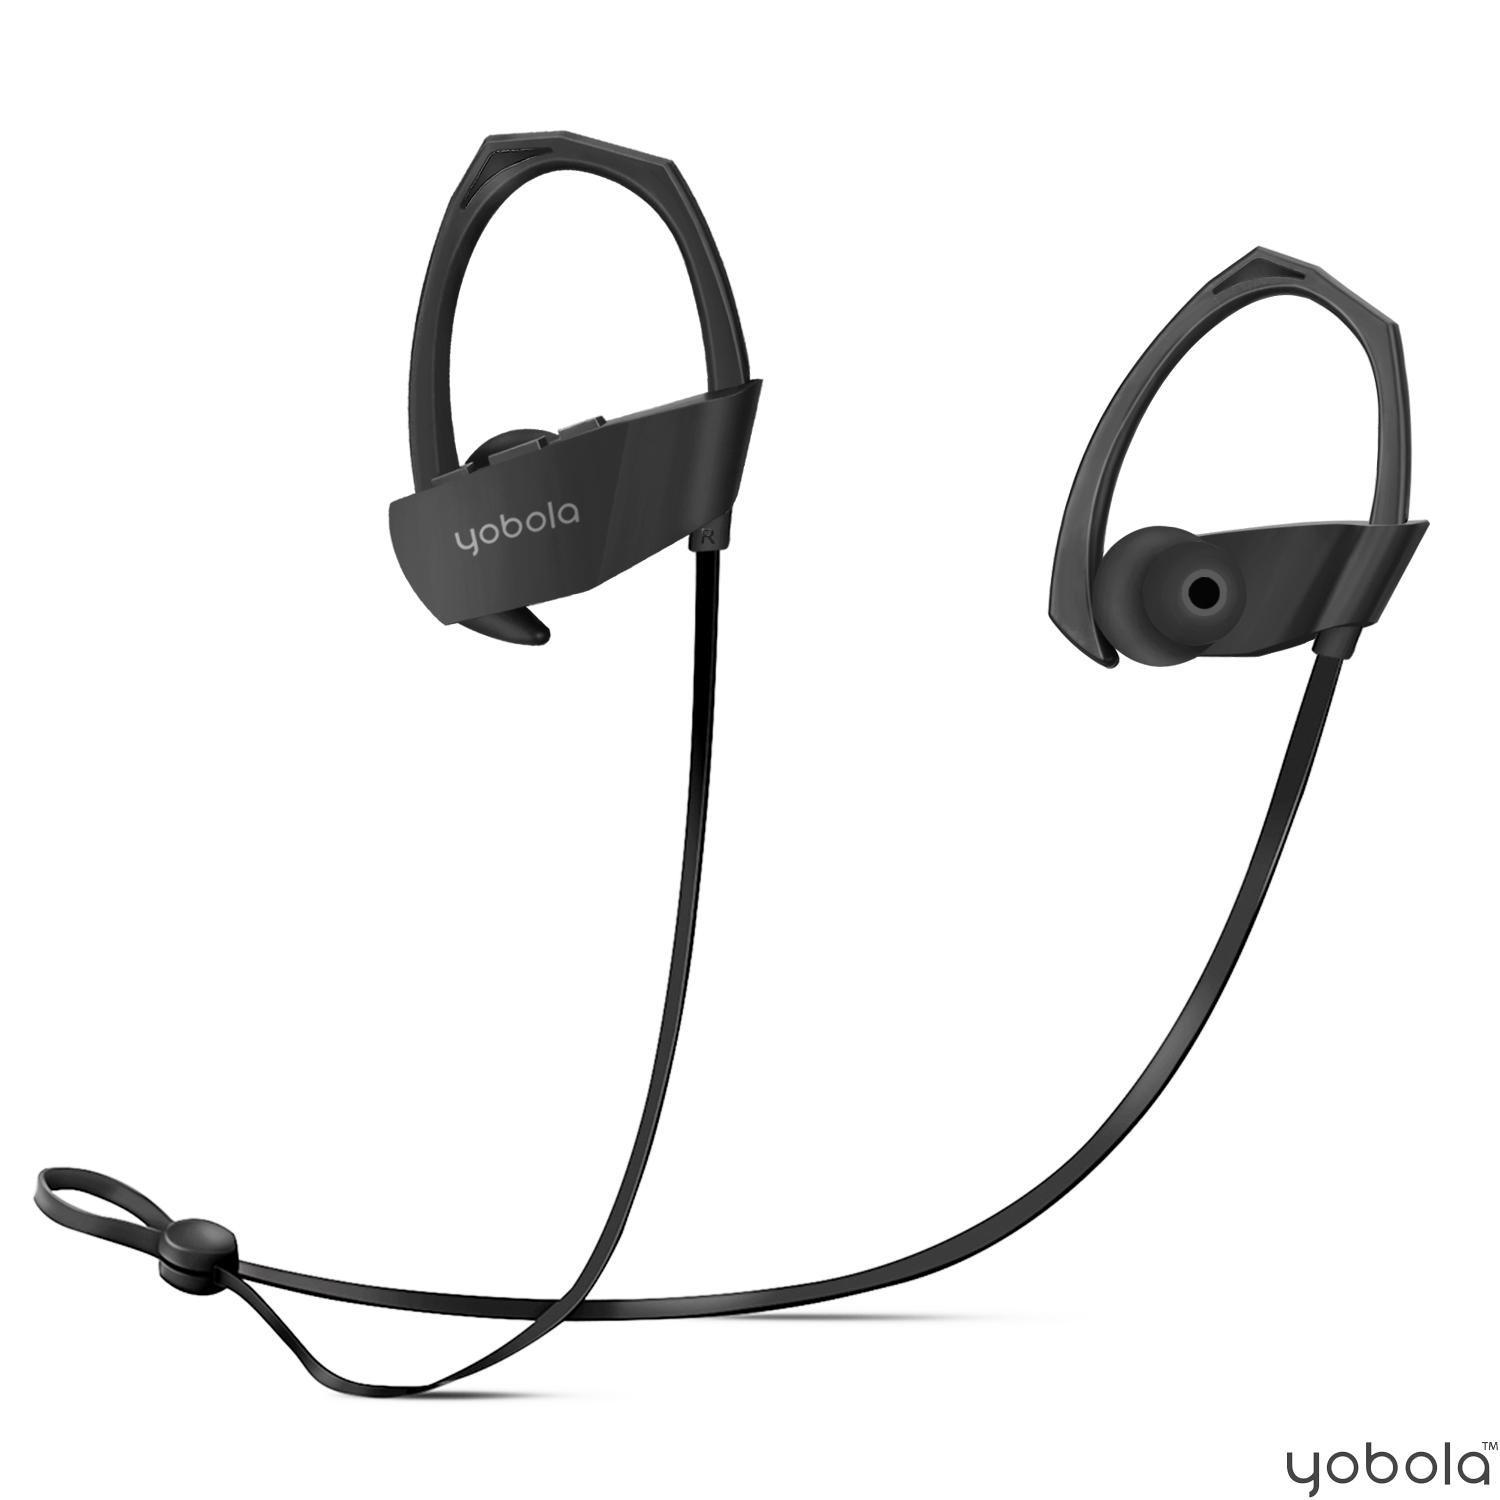 yobola M1 Bluetooth Headphones - Black